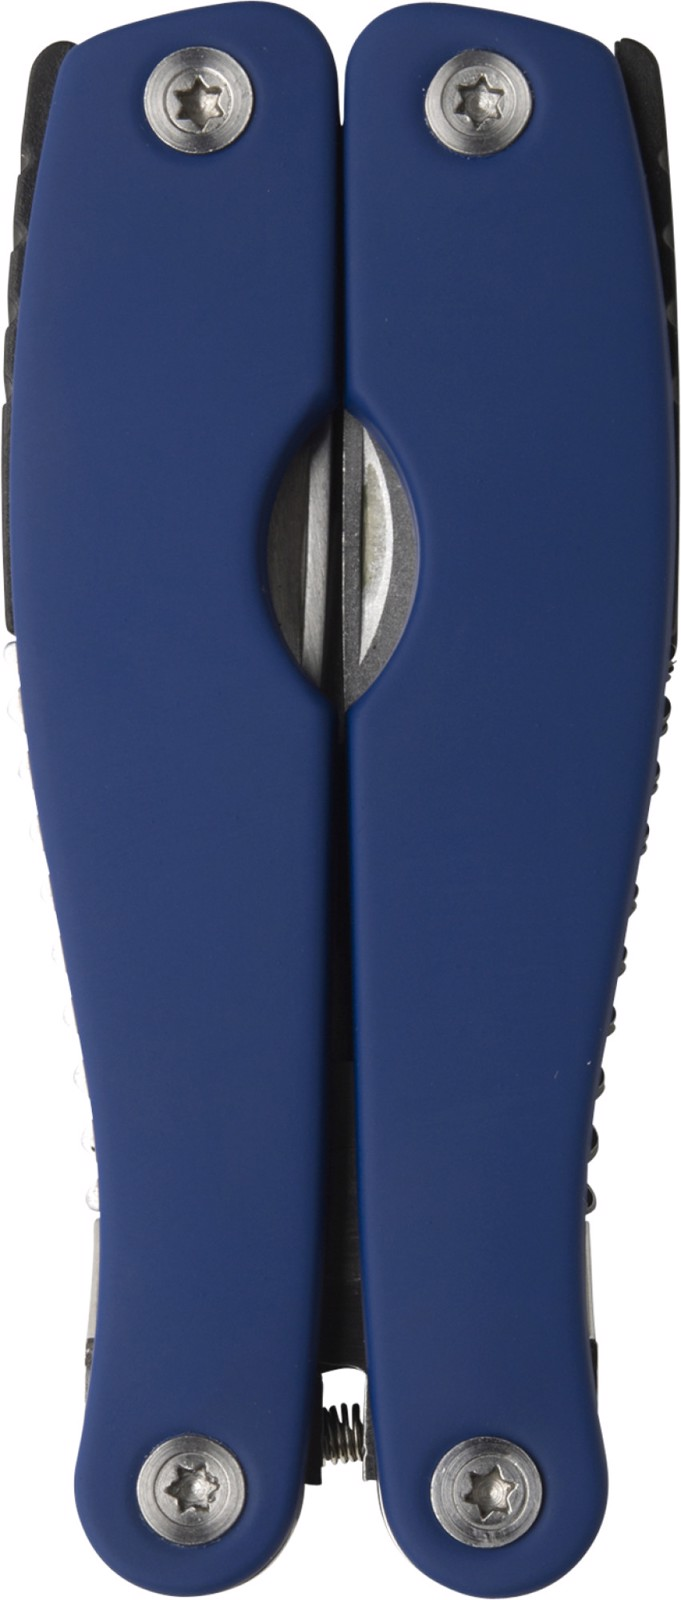 Stainless steel 10-in-1 tool - Blue